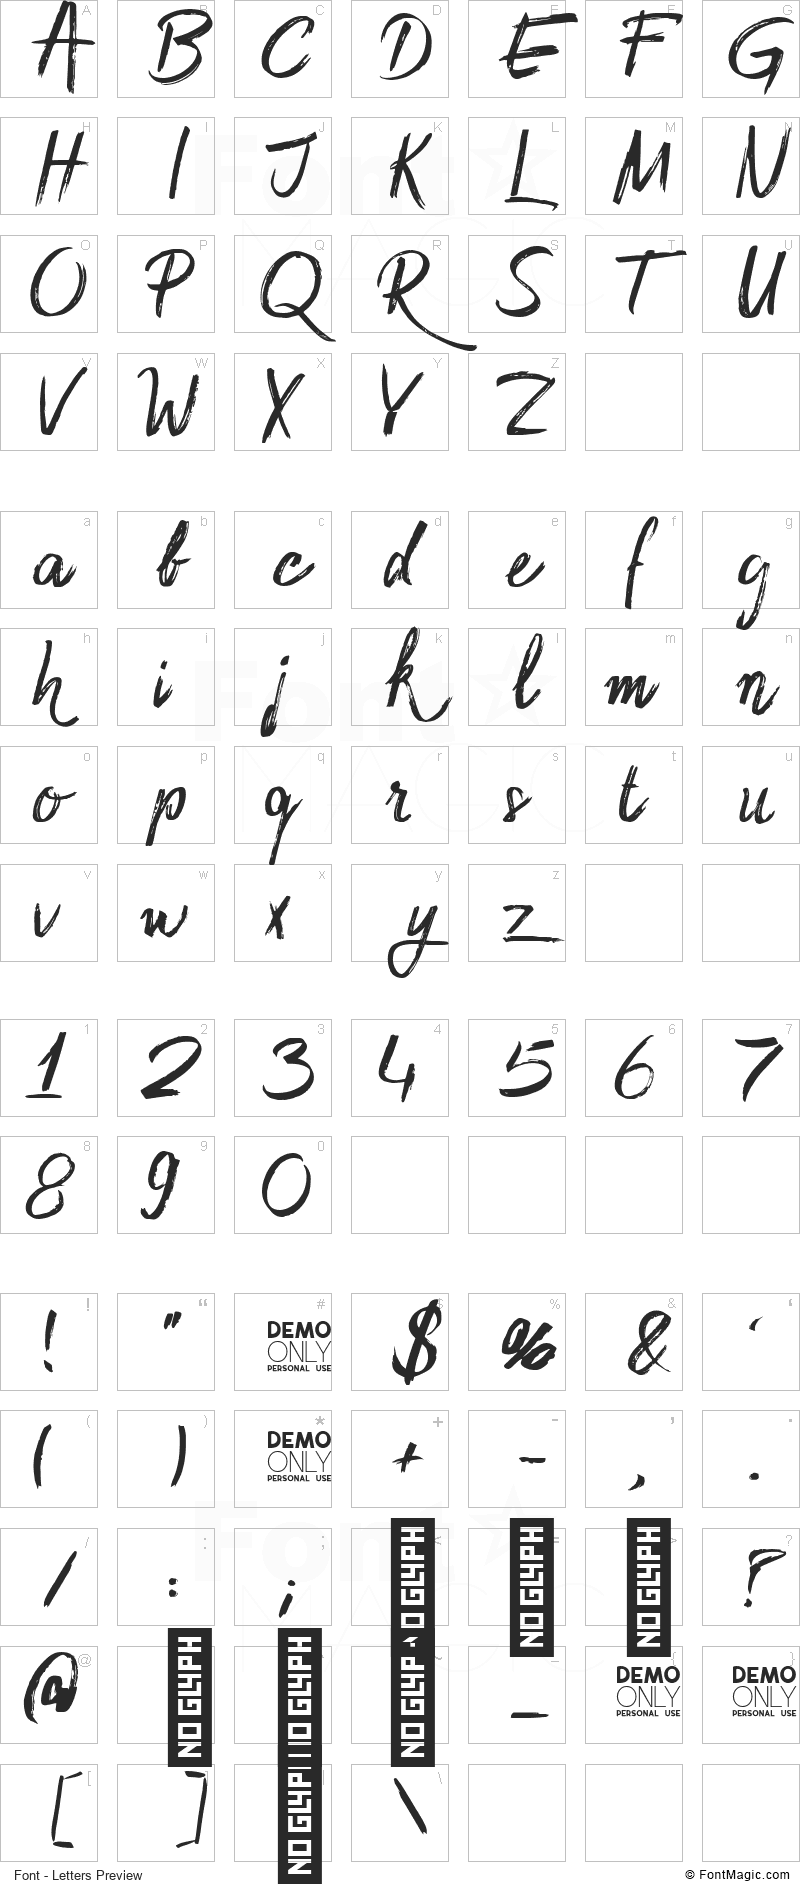 Sidney Font - All Latters Preview Chart